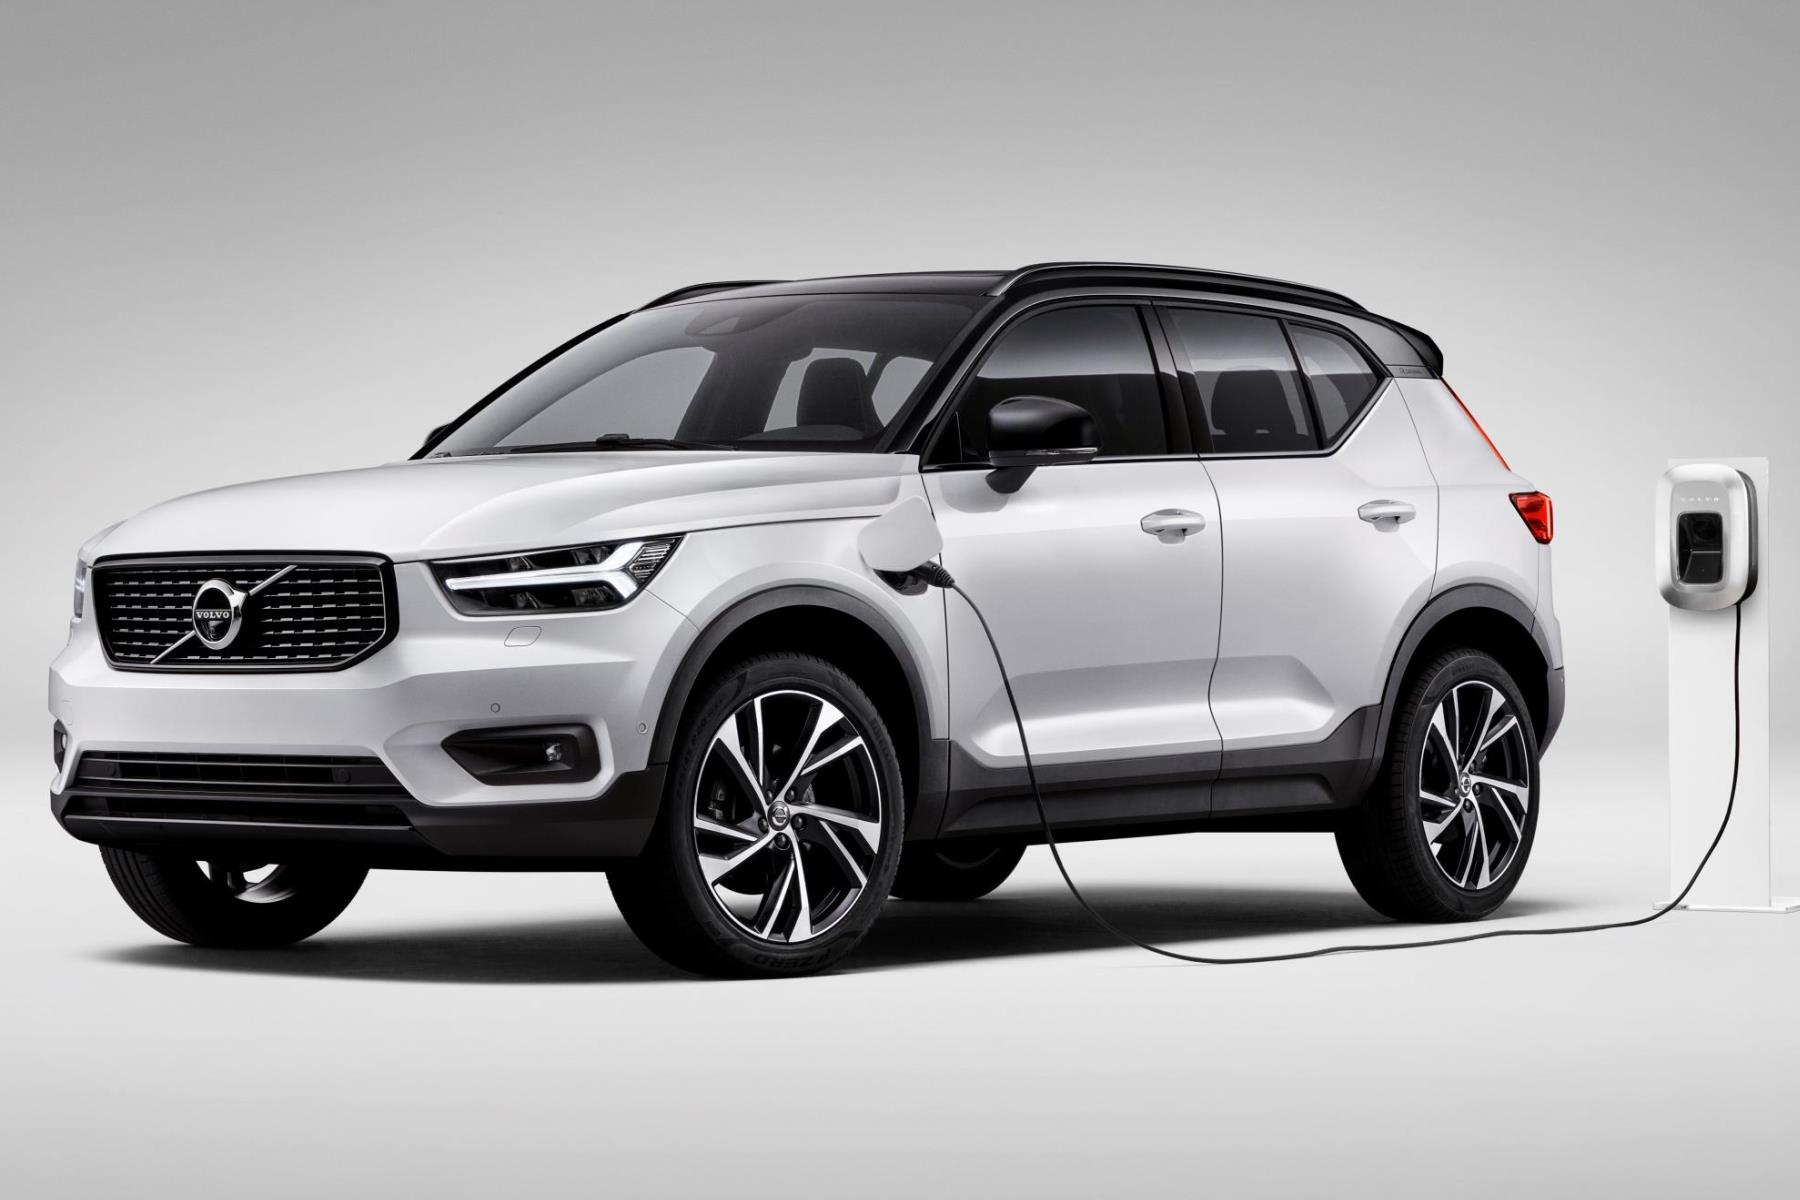 Volvo entices British car buyers with free electricity offer